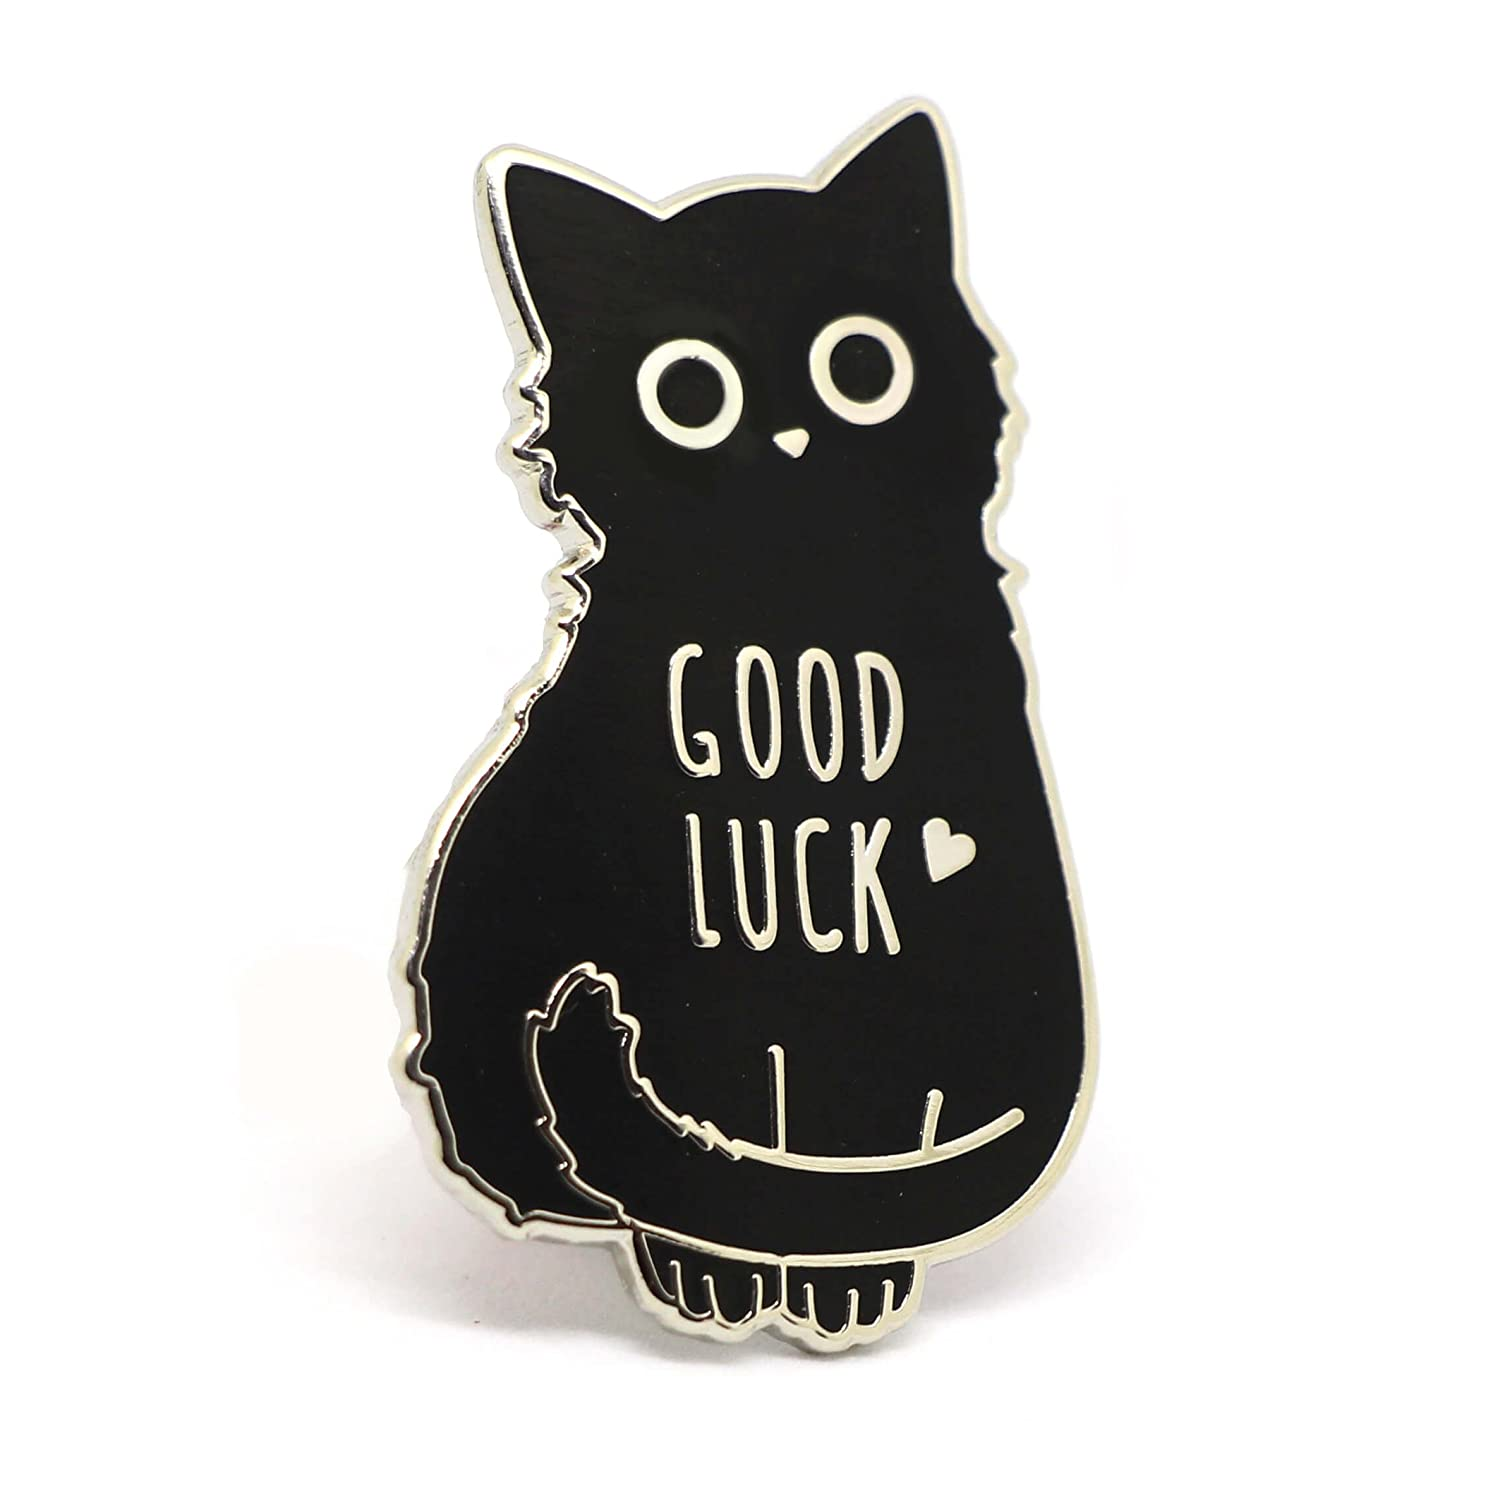 Compoco Cat Enamel Pin Black Cat Lapel Pin Good Luck Lucky Charm Pin A40